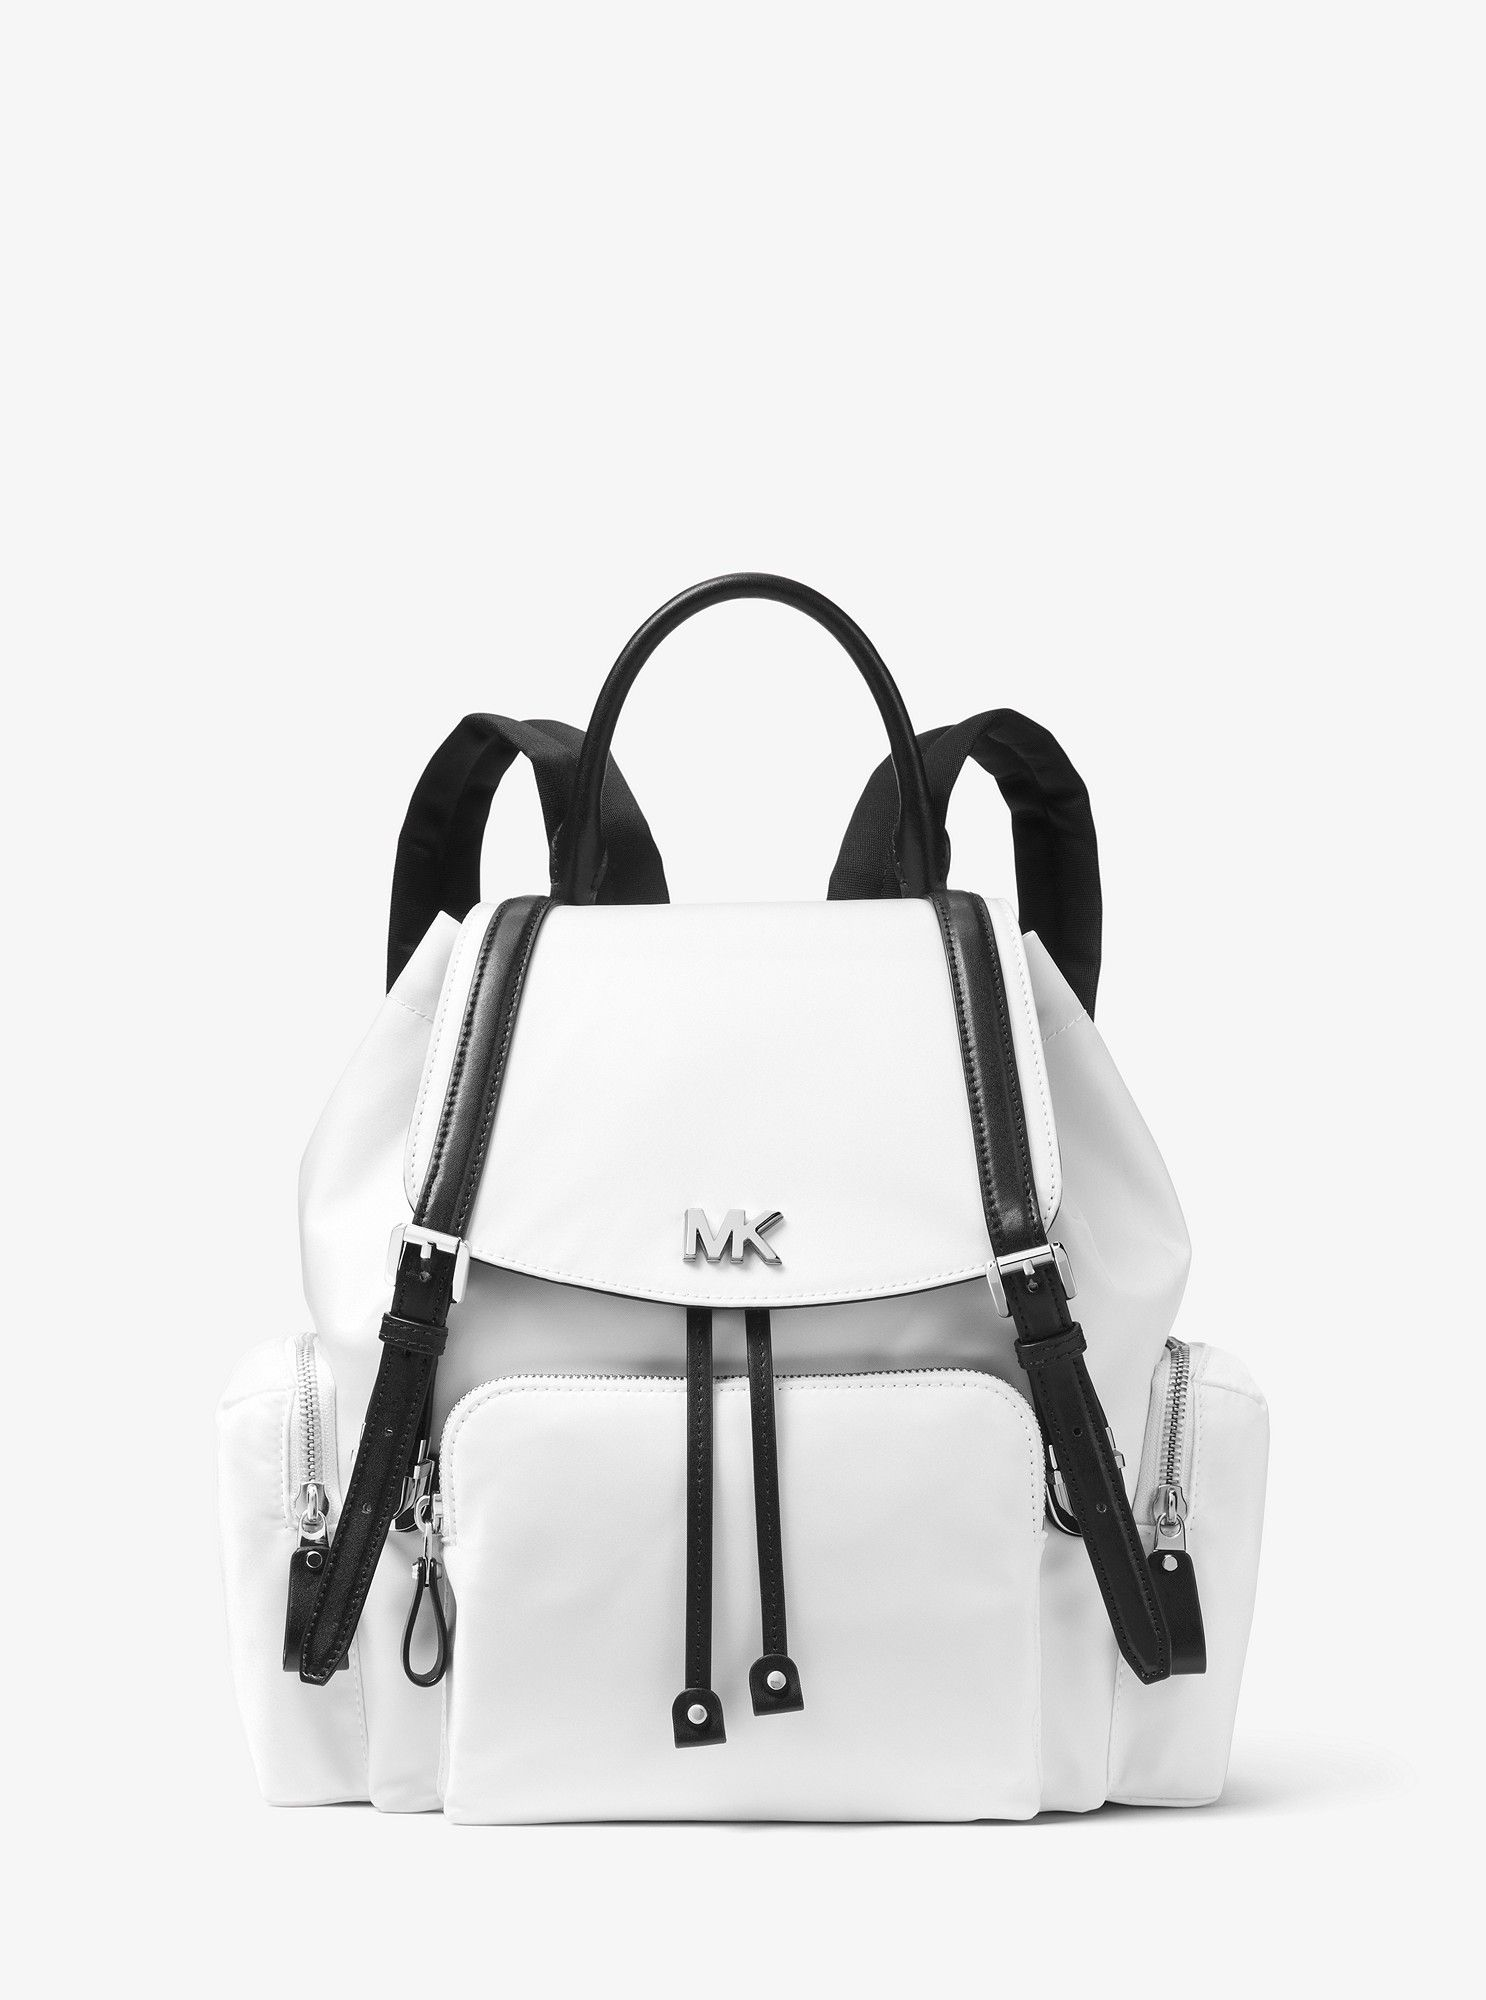 916efb4150f575 Michael Kors Beacon Medium Nylon Backpack - Optic White/Blk ...